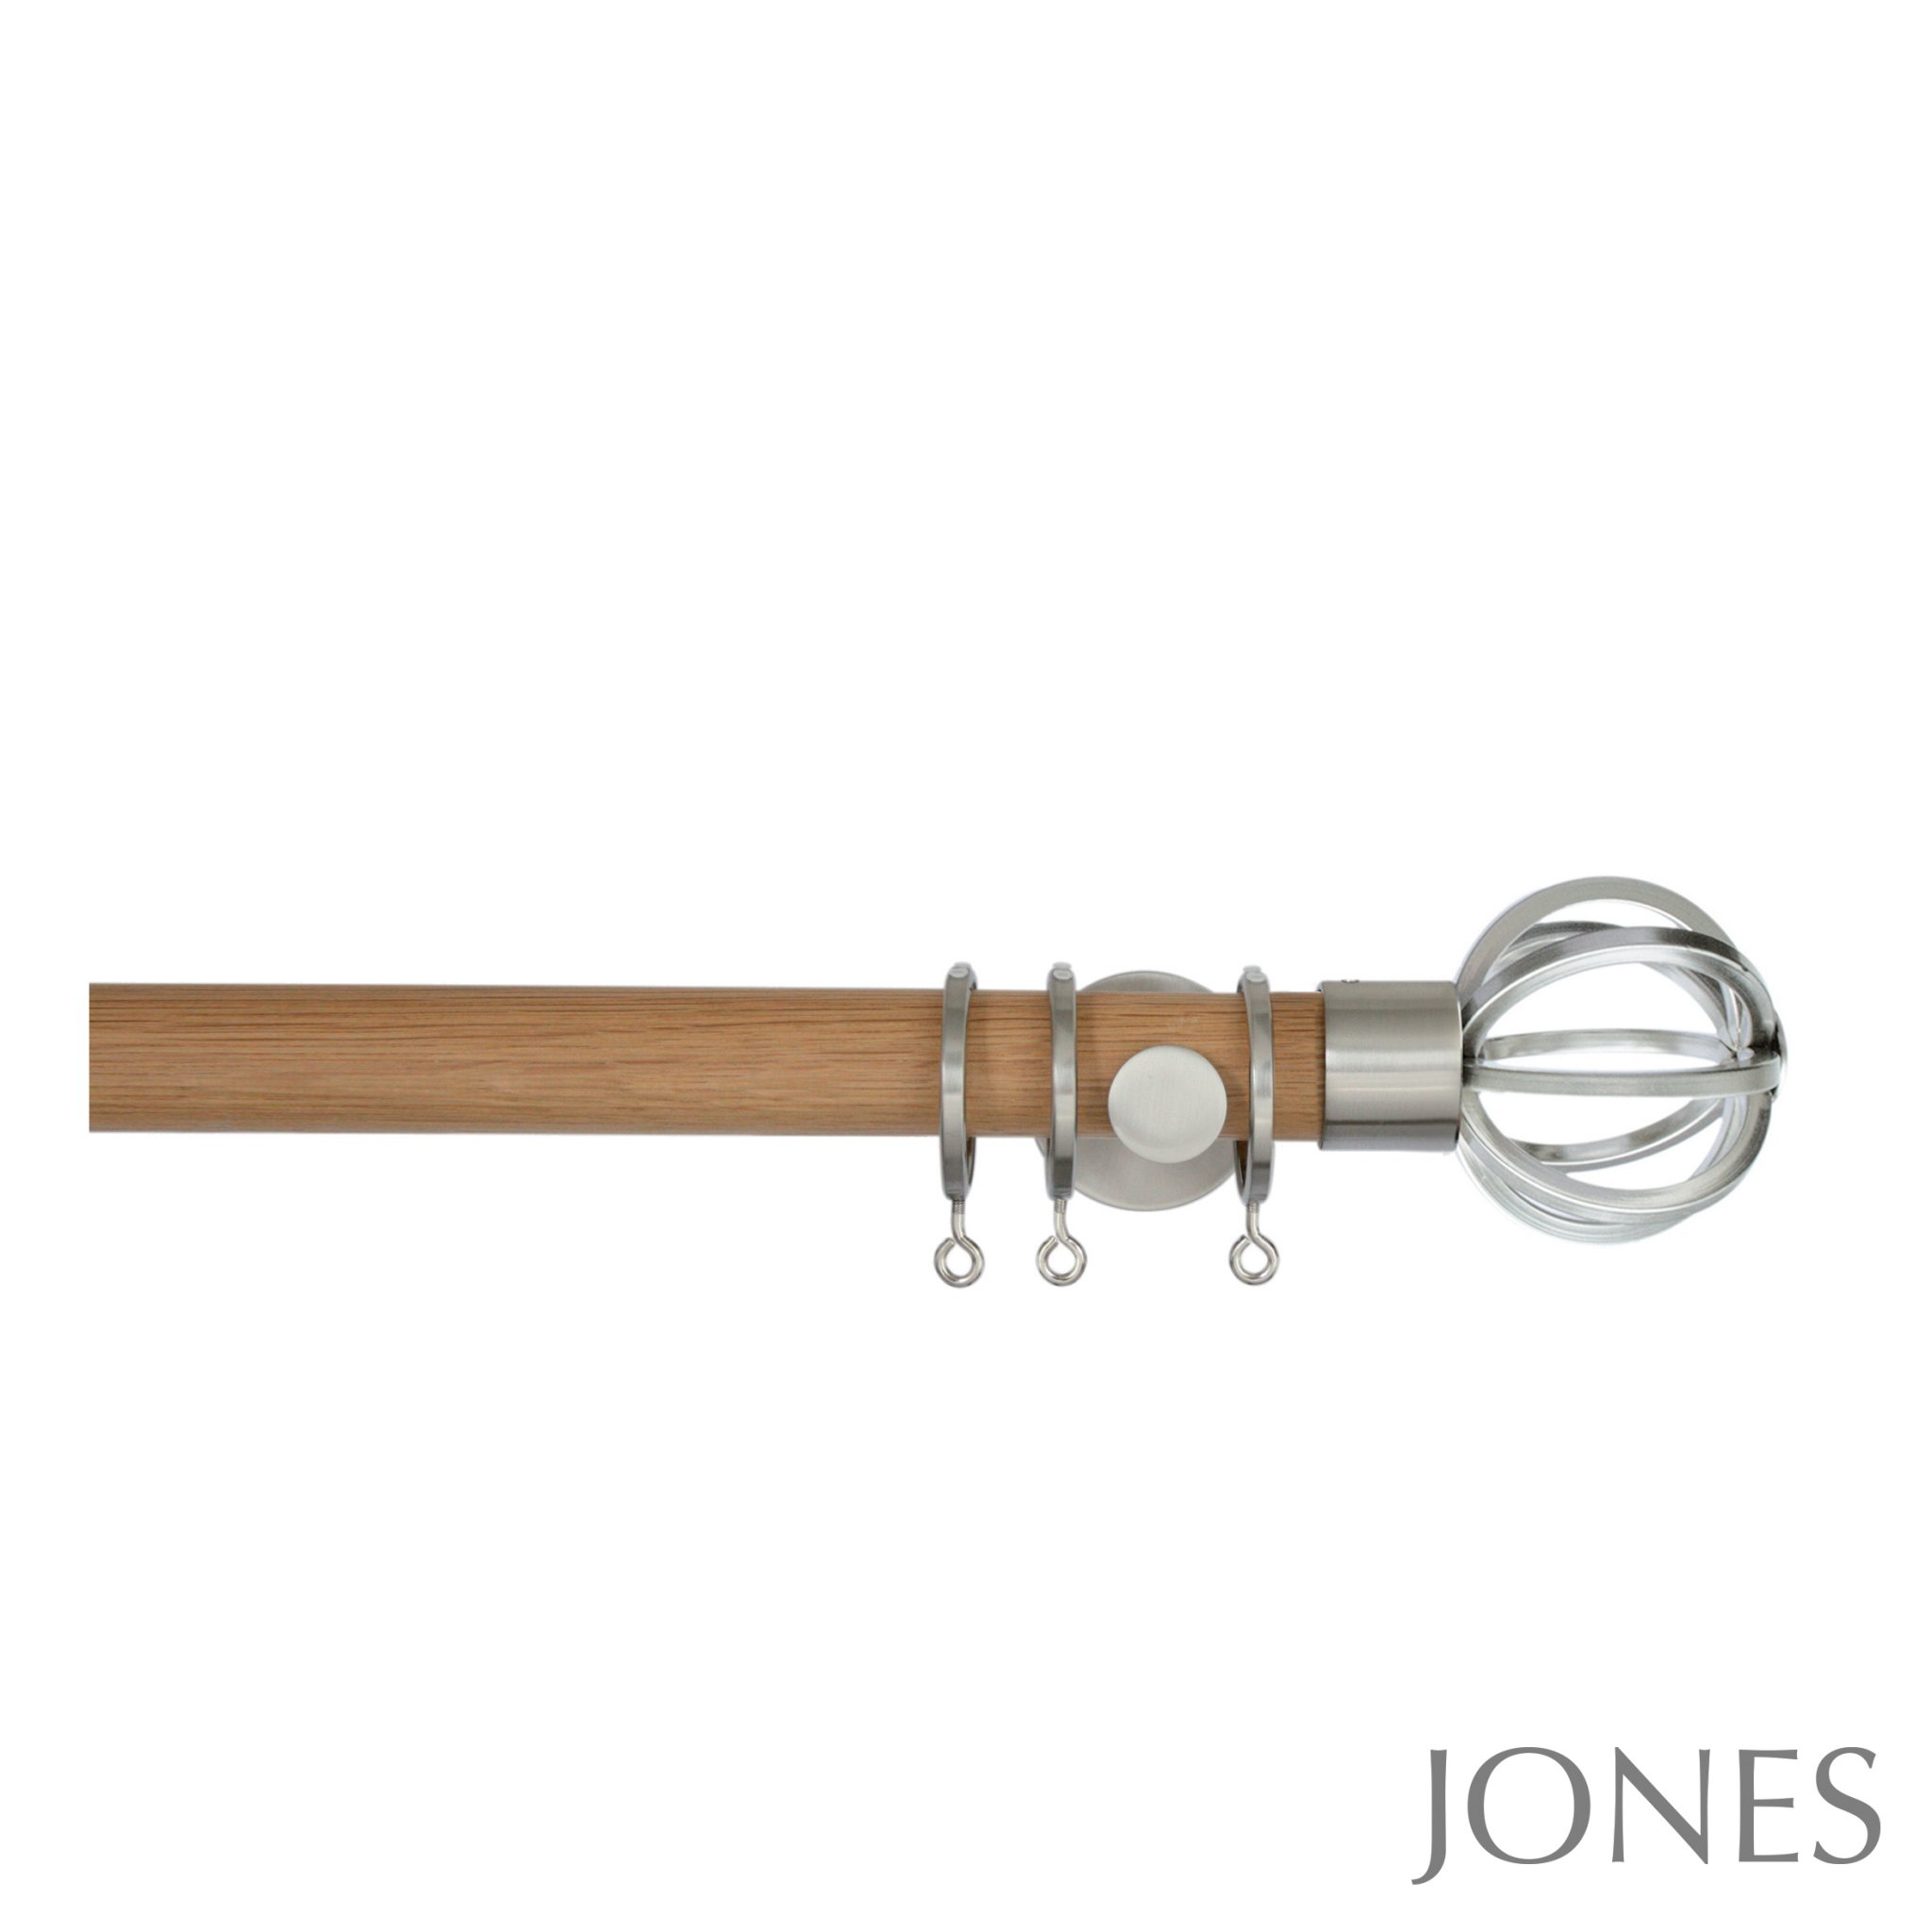 Jones Lunar 28mm Oak Curtain Pole with Cage Finials